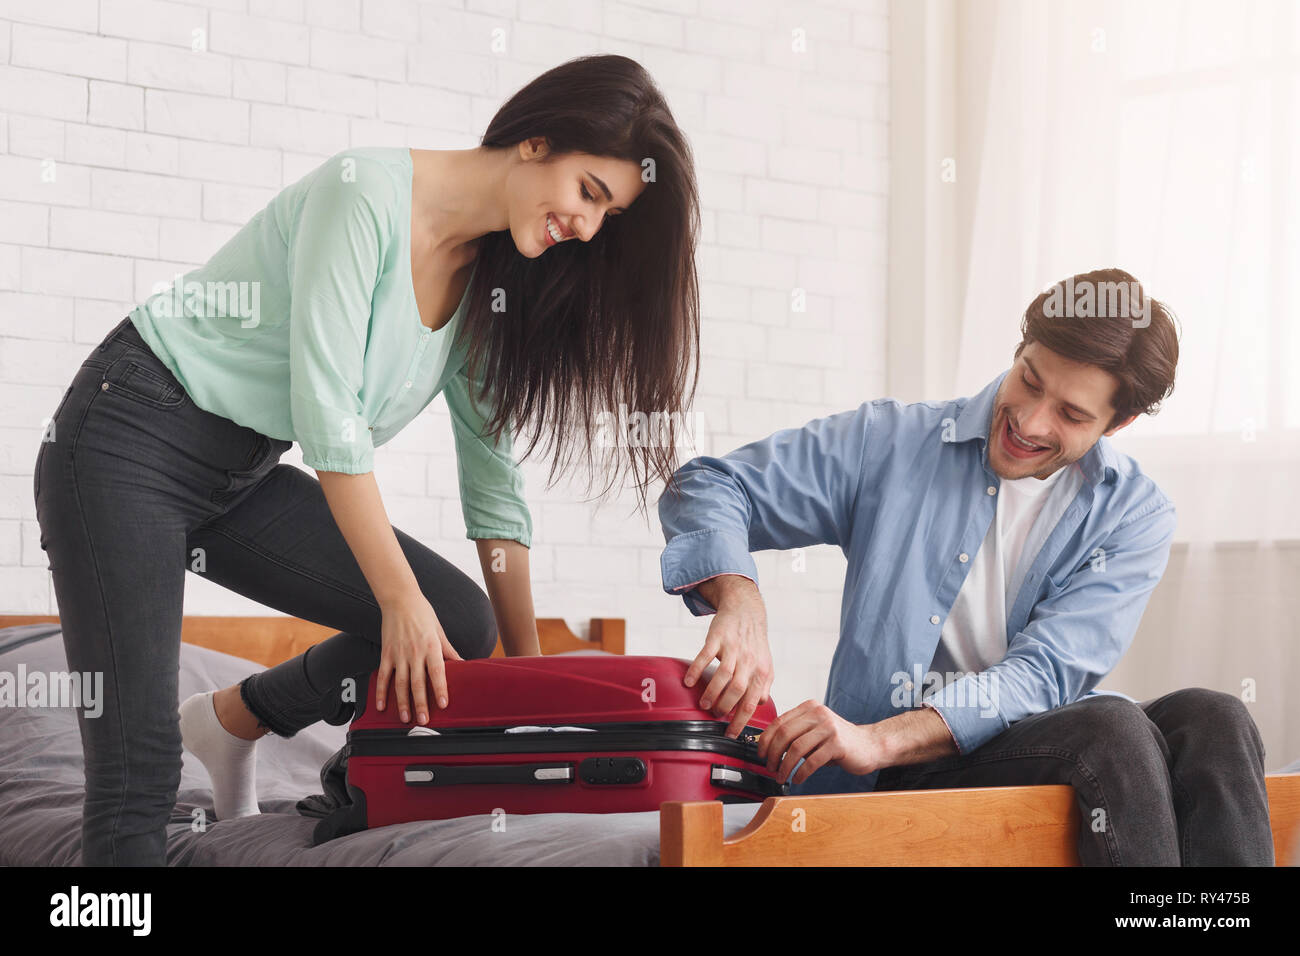 Couple closing full suitcase, preparing for vacation - Stock Image